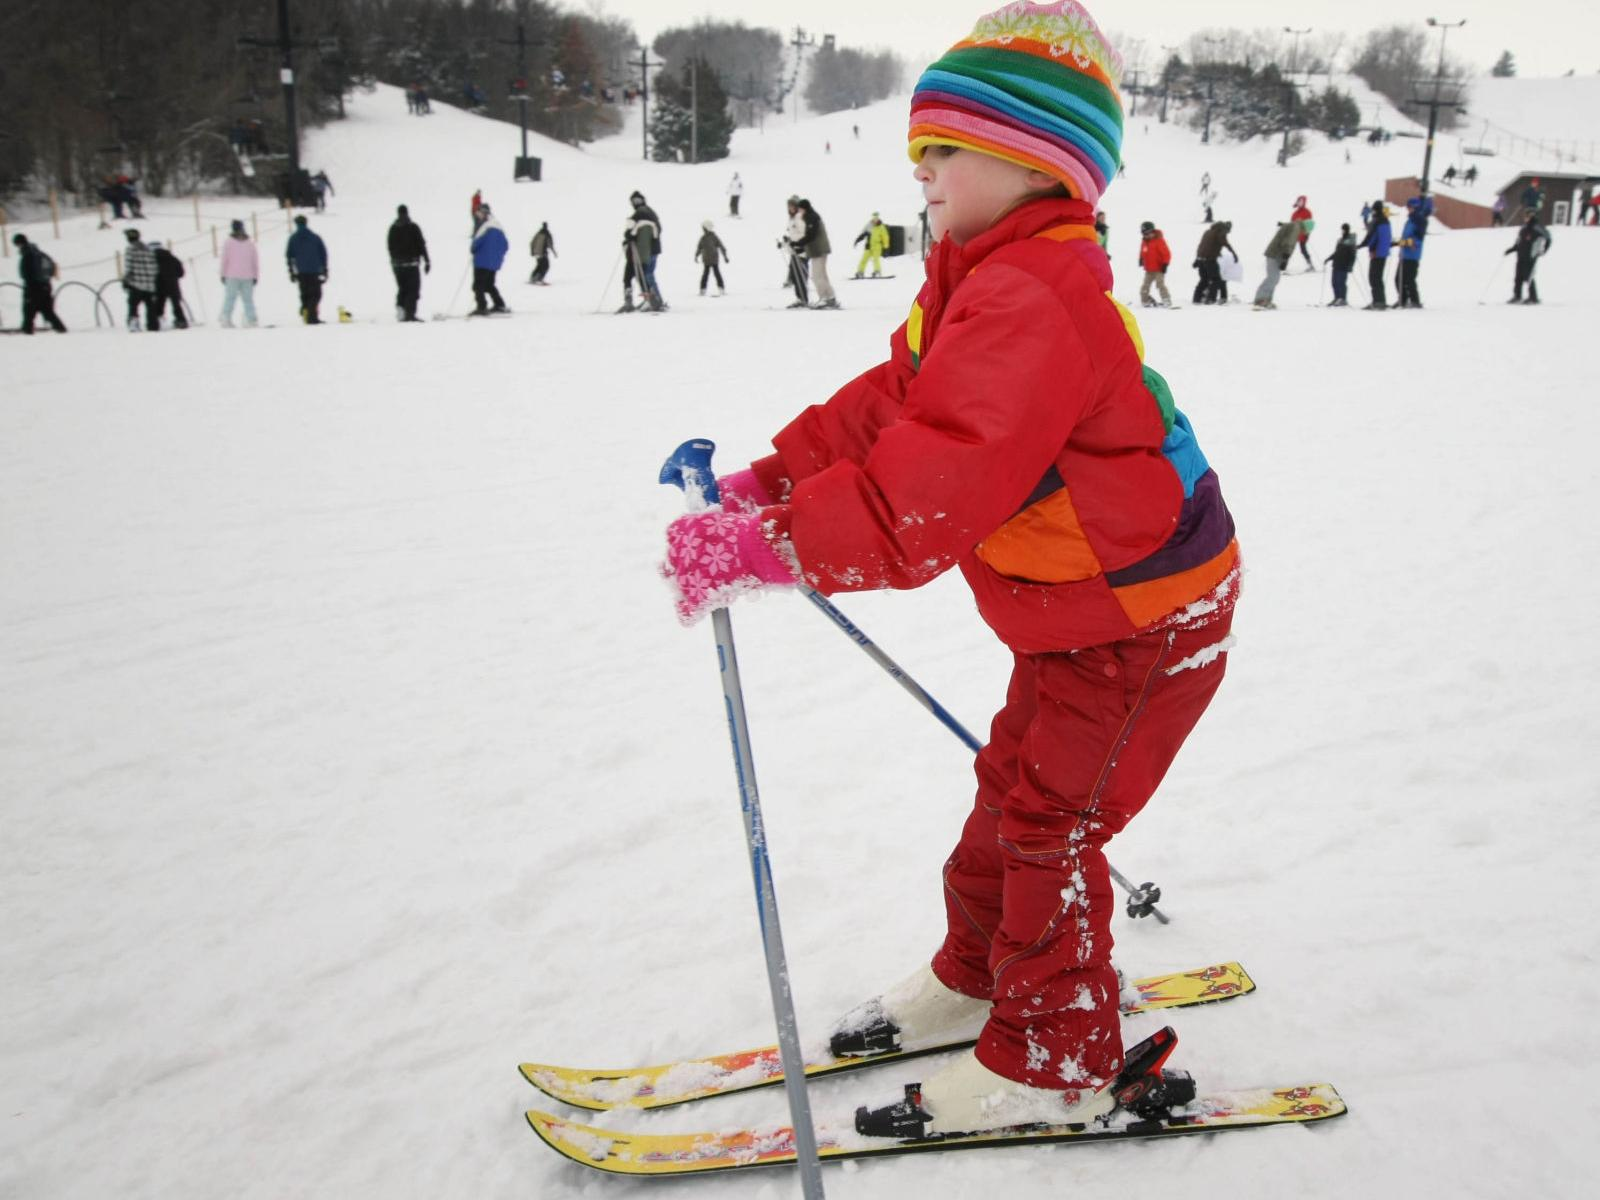 Bored this winter? Head to one of these 5 locations for a little family fun